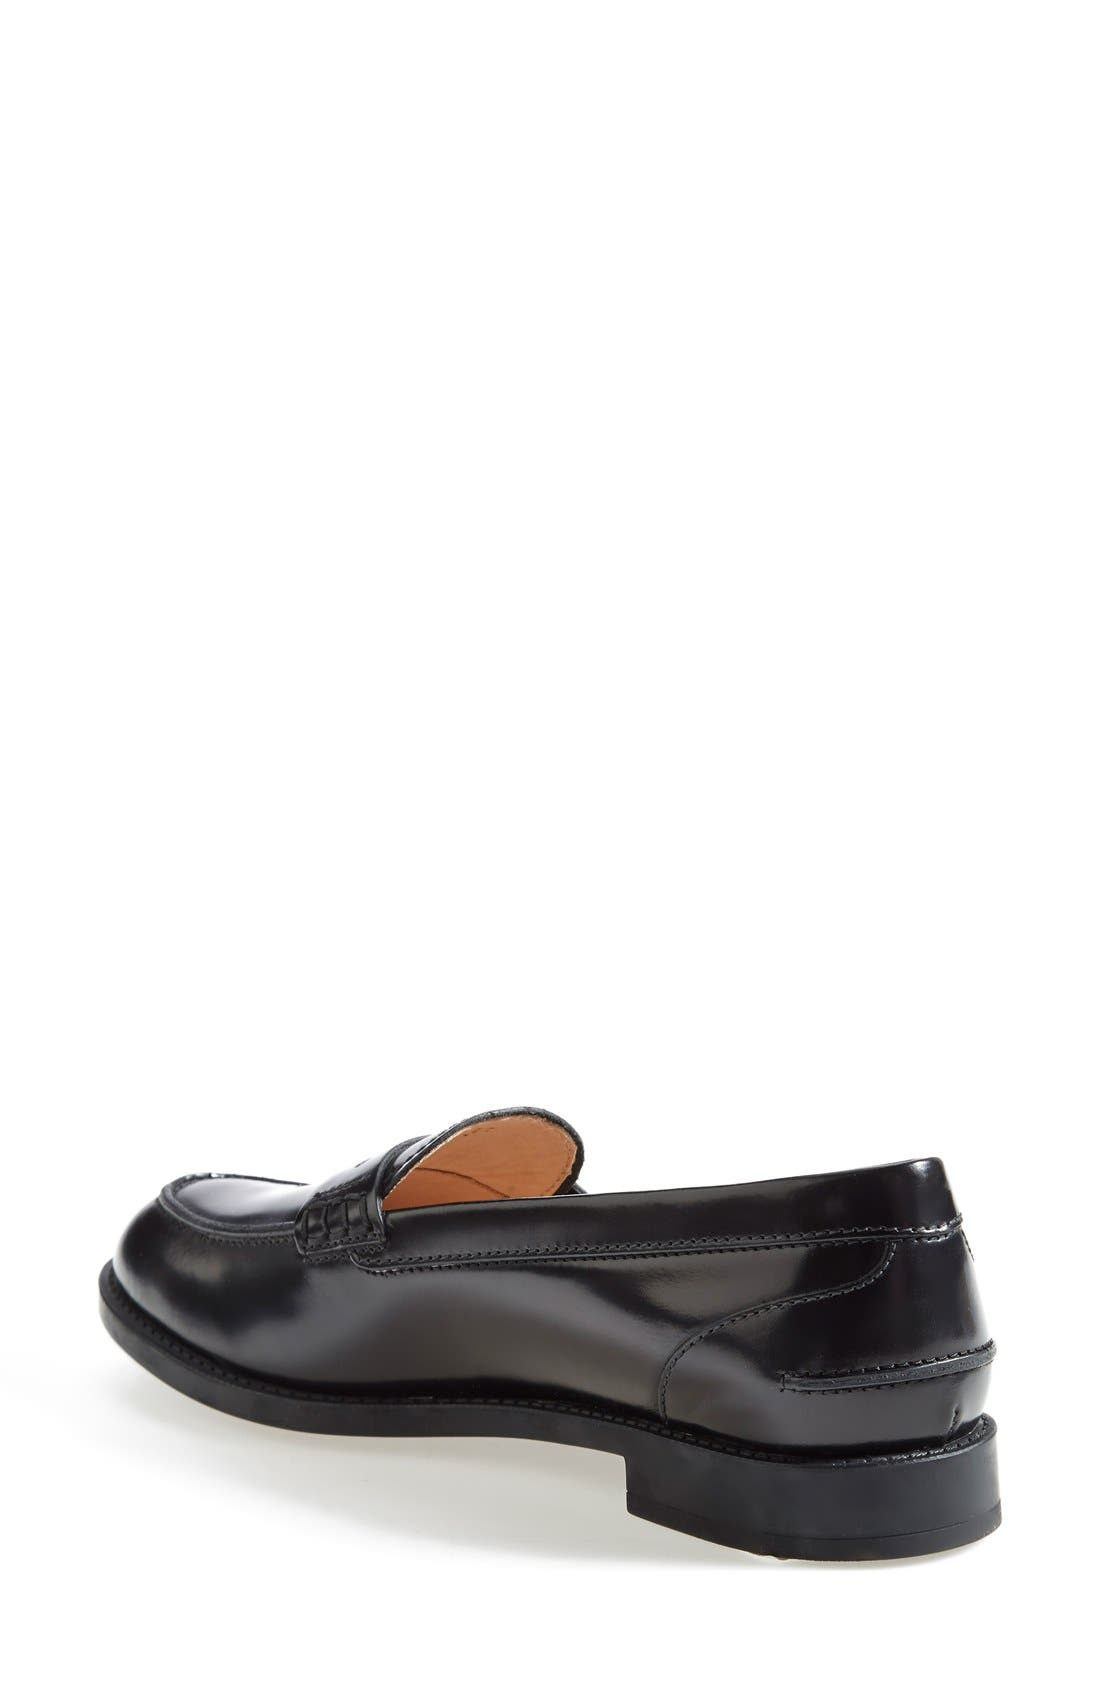 Alternate Image 2  - Tod's 'Classic' Leather Loafer (Women)